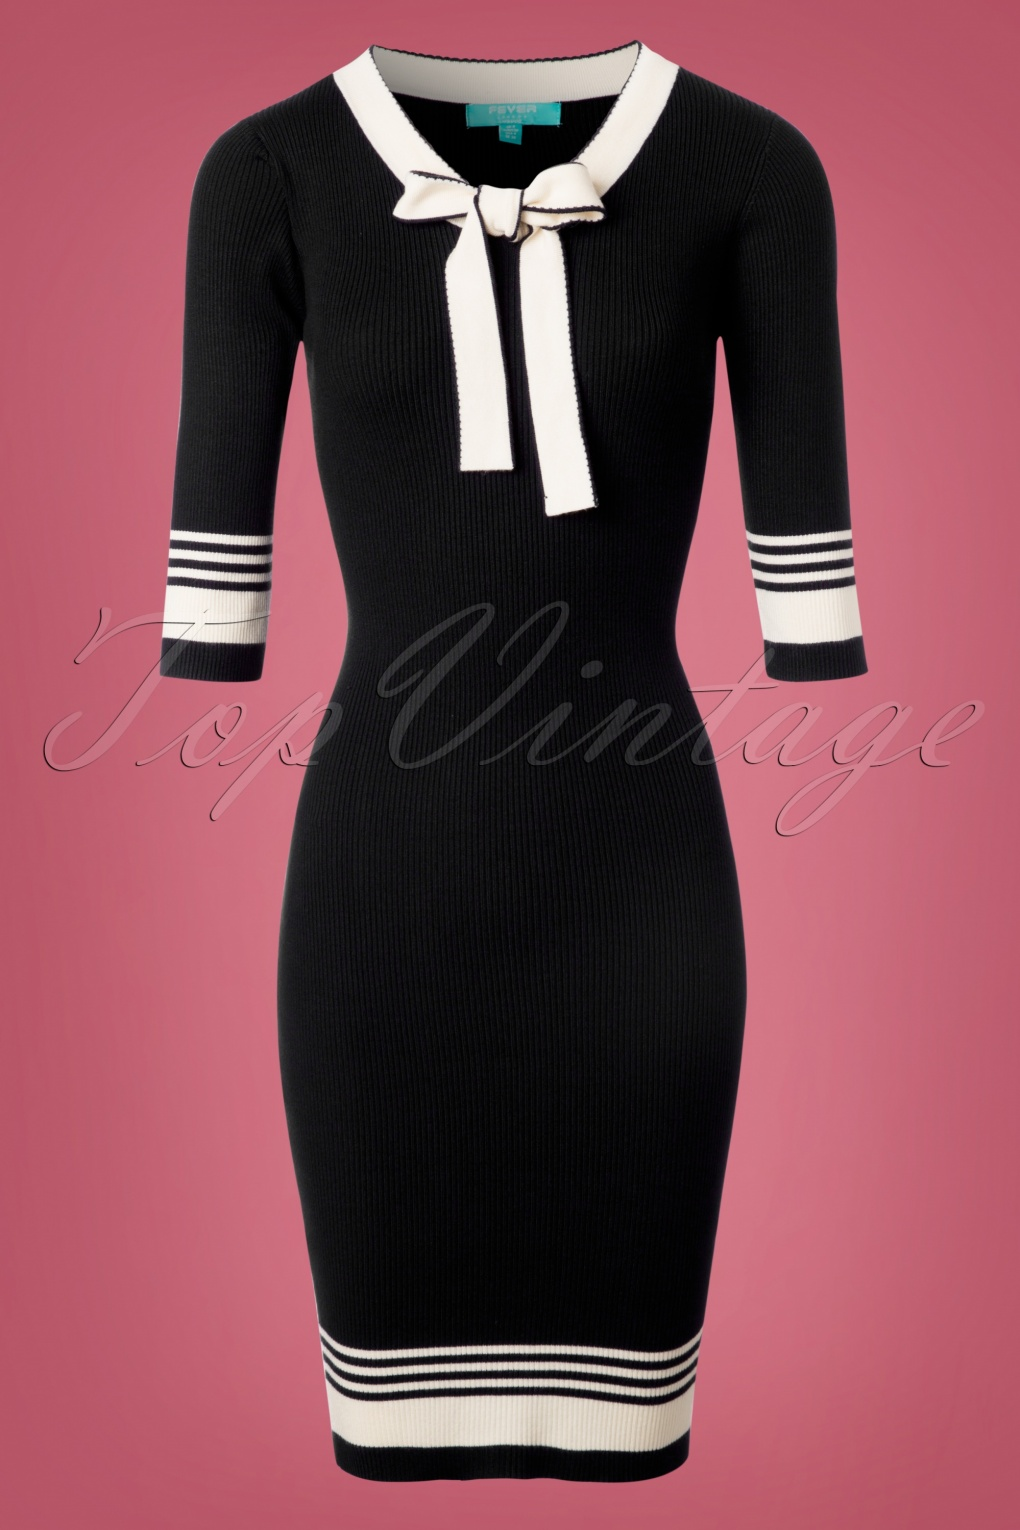 Sailor Dresses, Nautical Dress, Pin Up & WW2 Dresses 50s Leon Knitted Pencil Dress in Black and White £75.43 AT vintagedancer.com